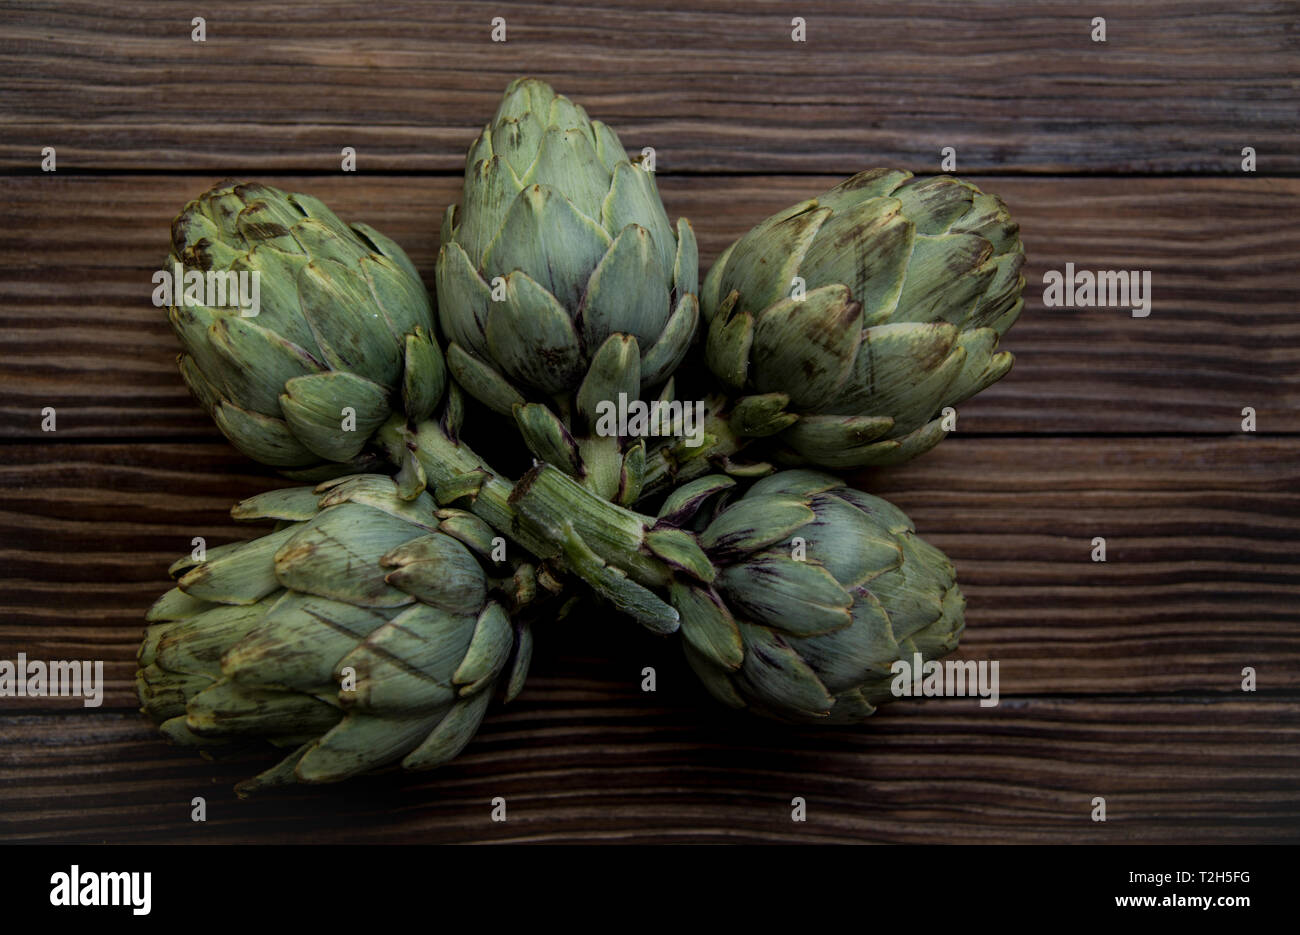 artichokes on old wooden table Stock Photo